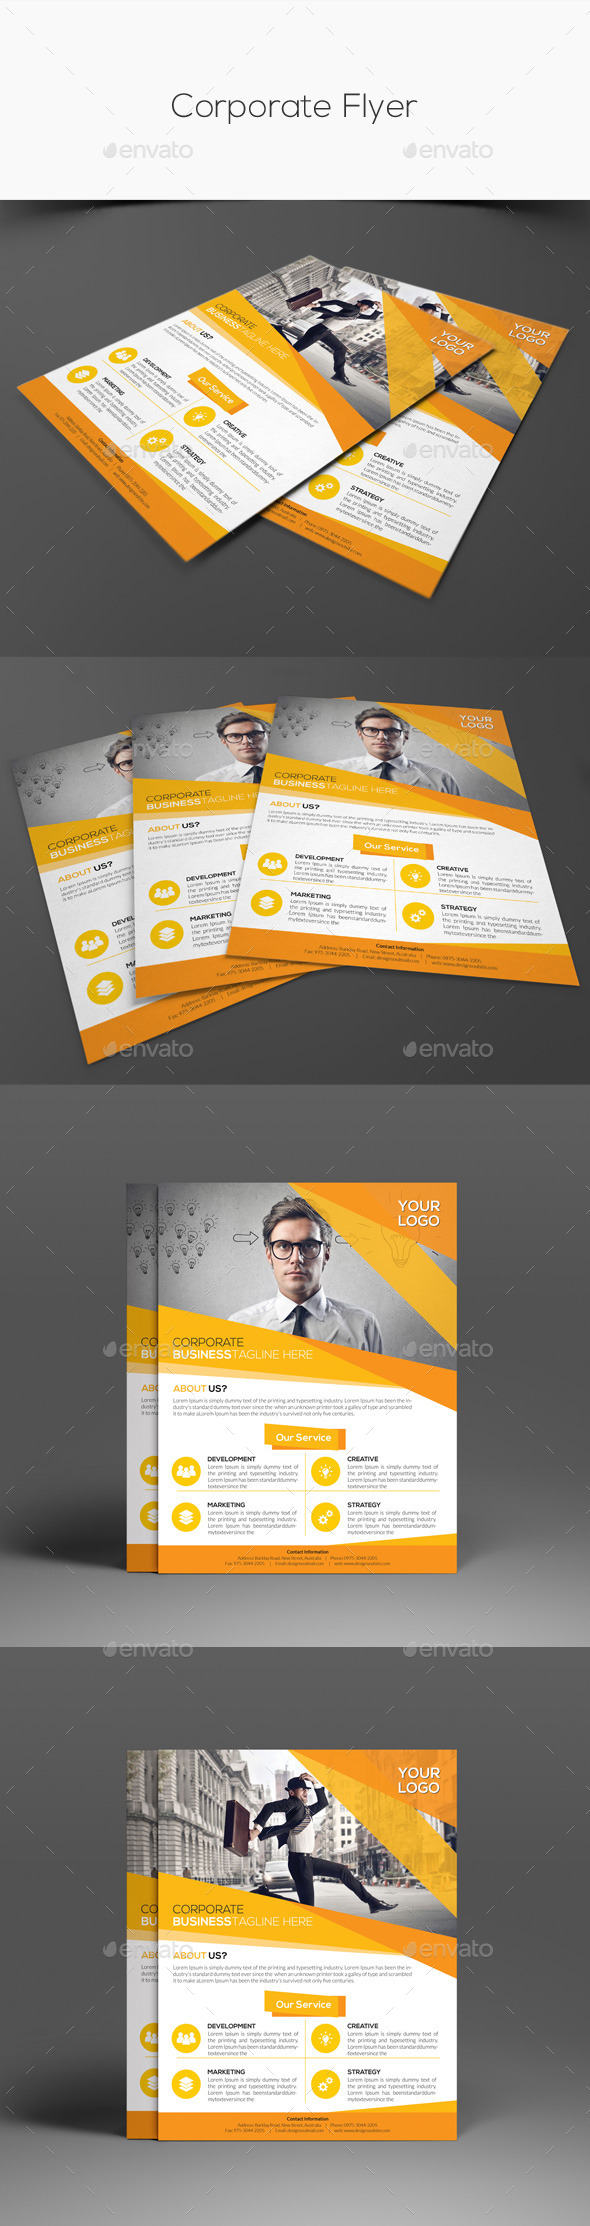 GraphicRiver Corporate Flyer 11252950